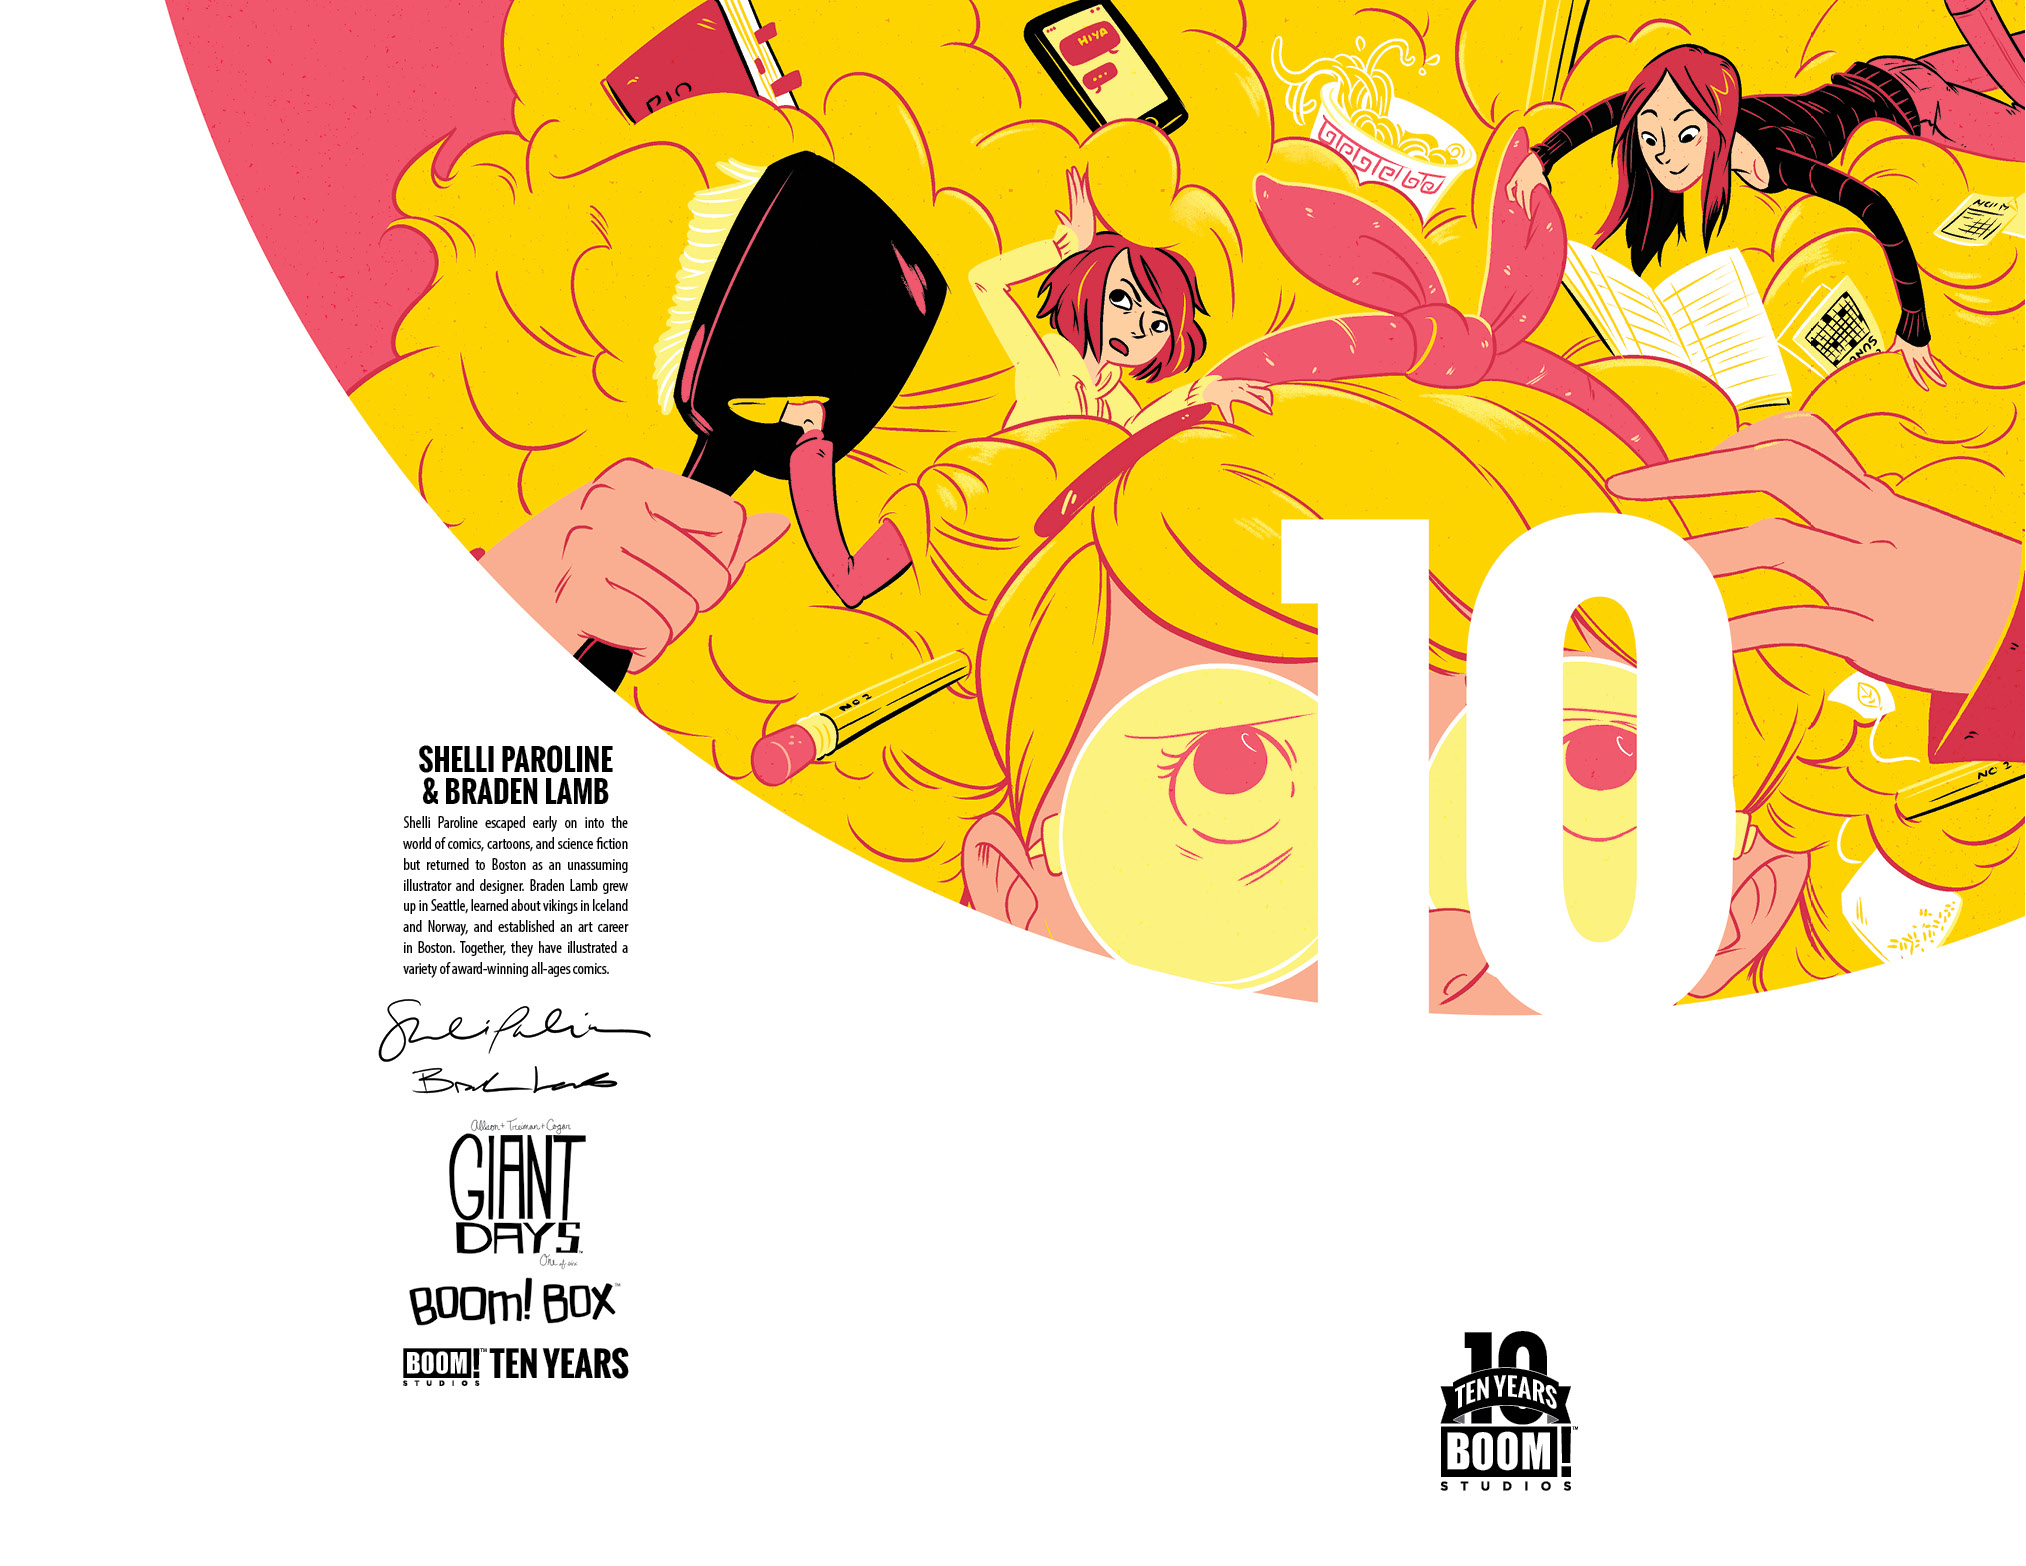 Giant Days #1 10 Years Incentive Cover